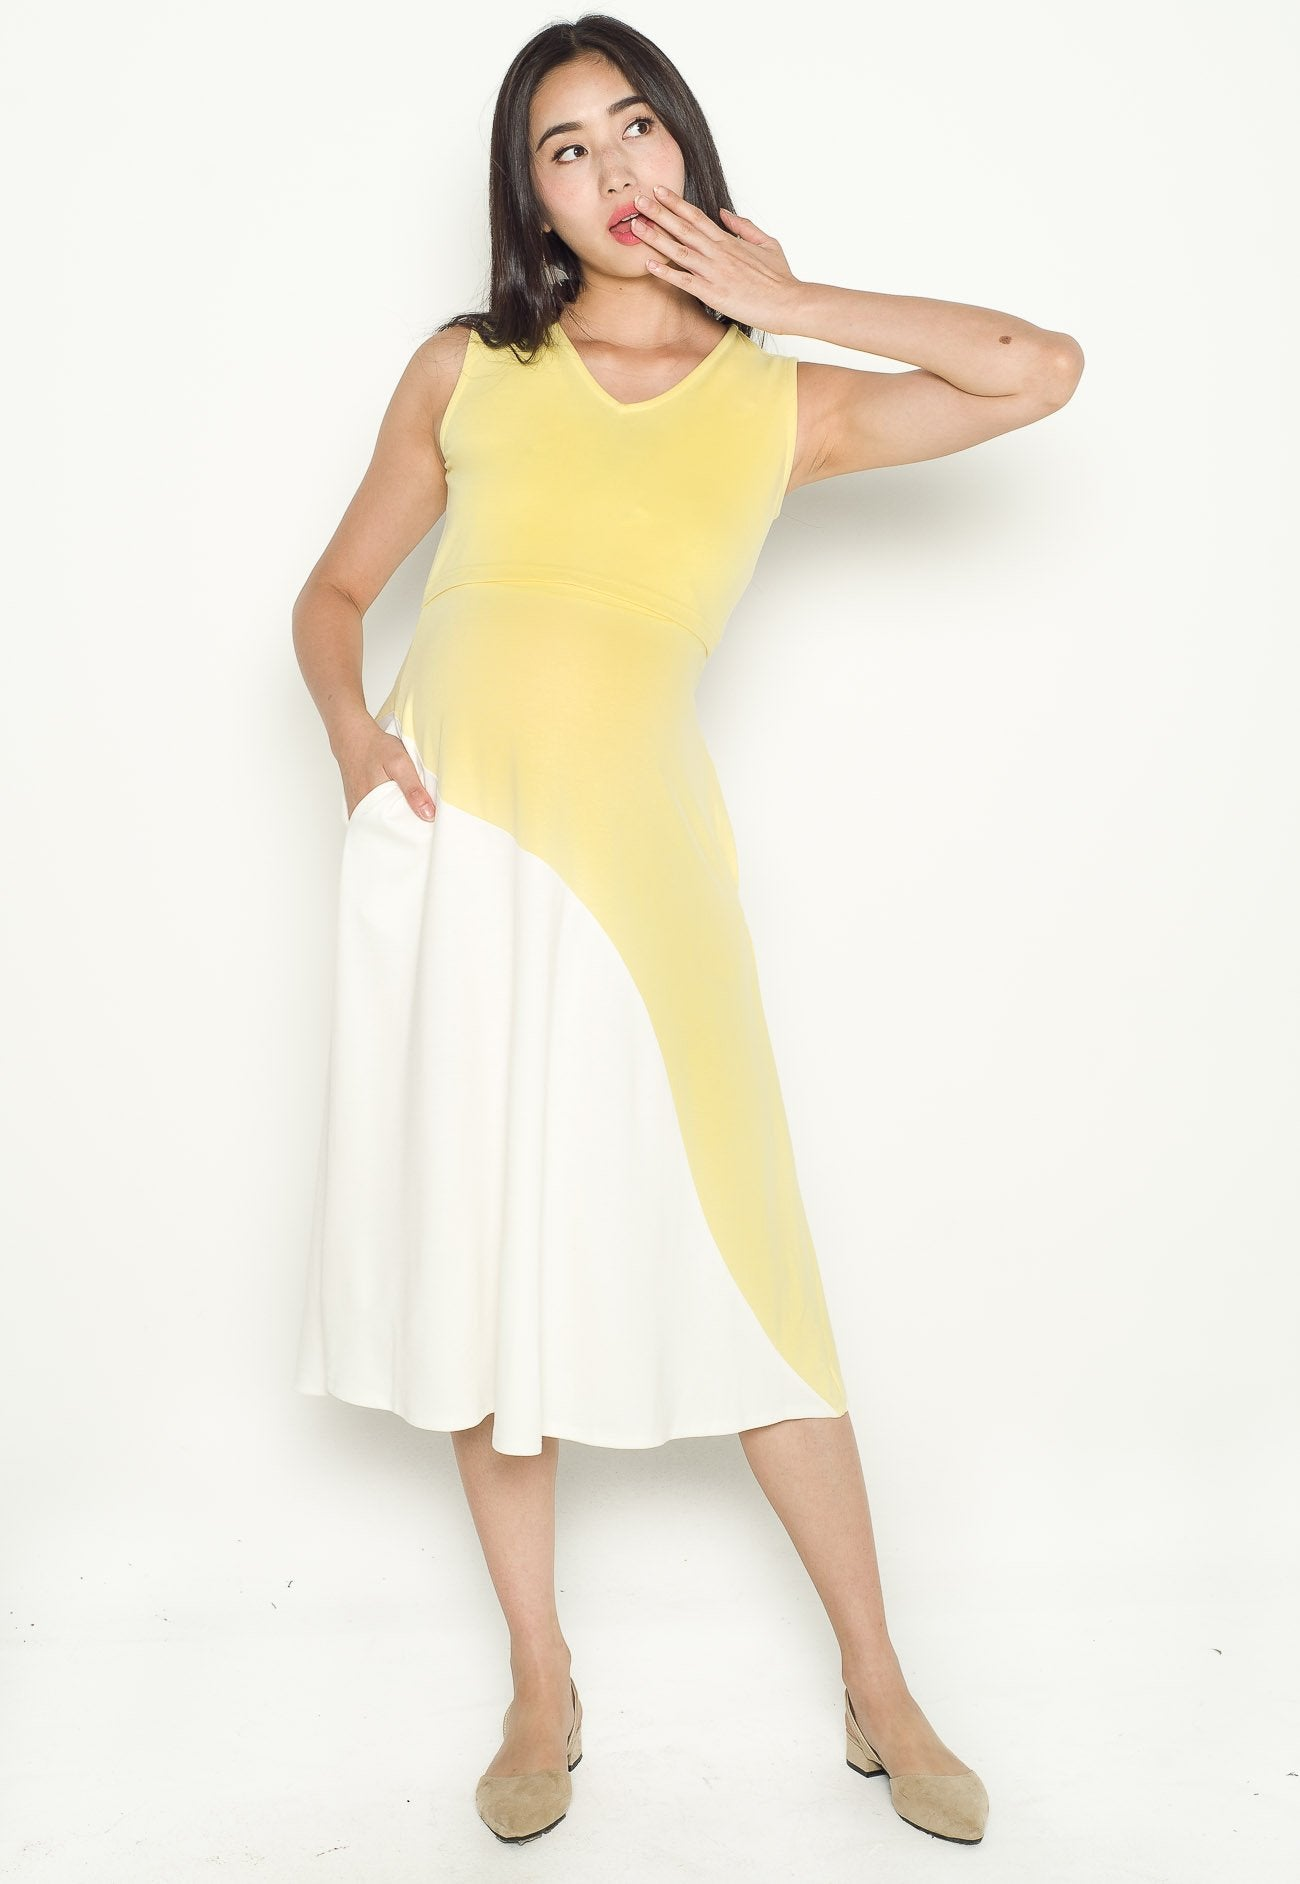 Evie Curved Overlay Nursing Dress in Yellow  by Jump Eat Cry - Maternity and nursing wear